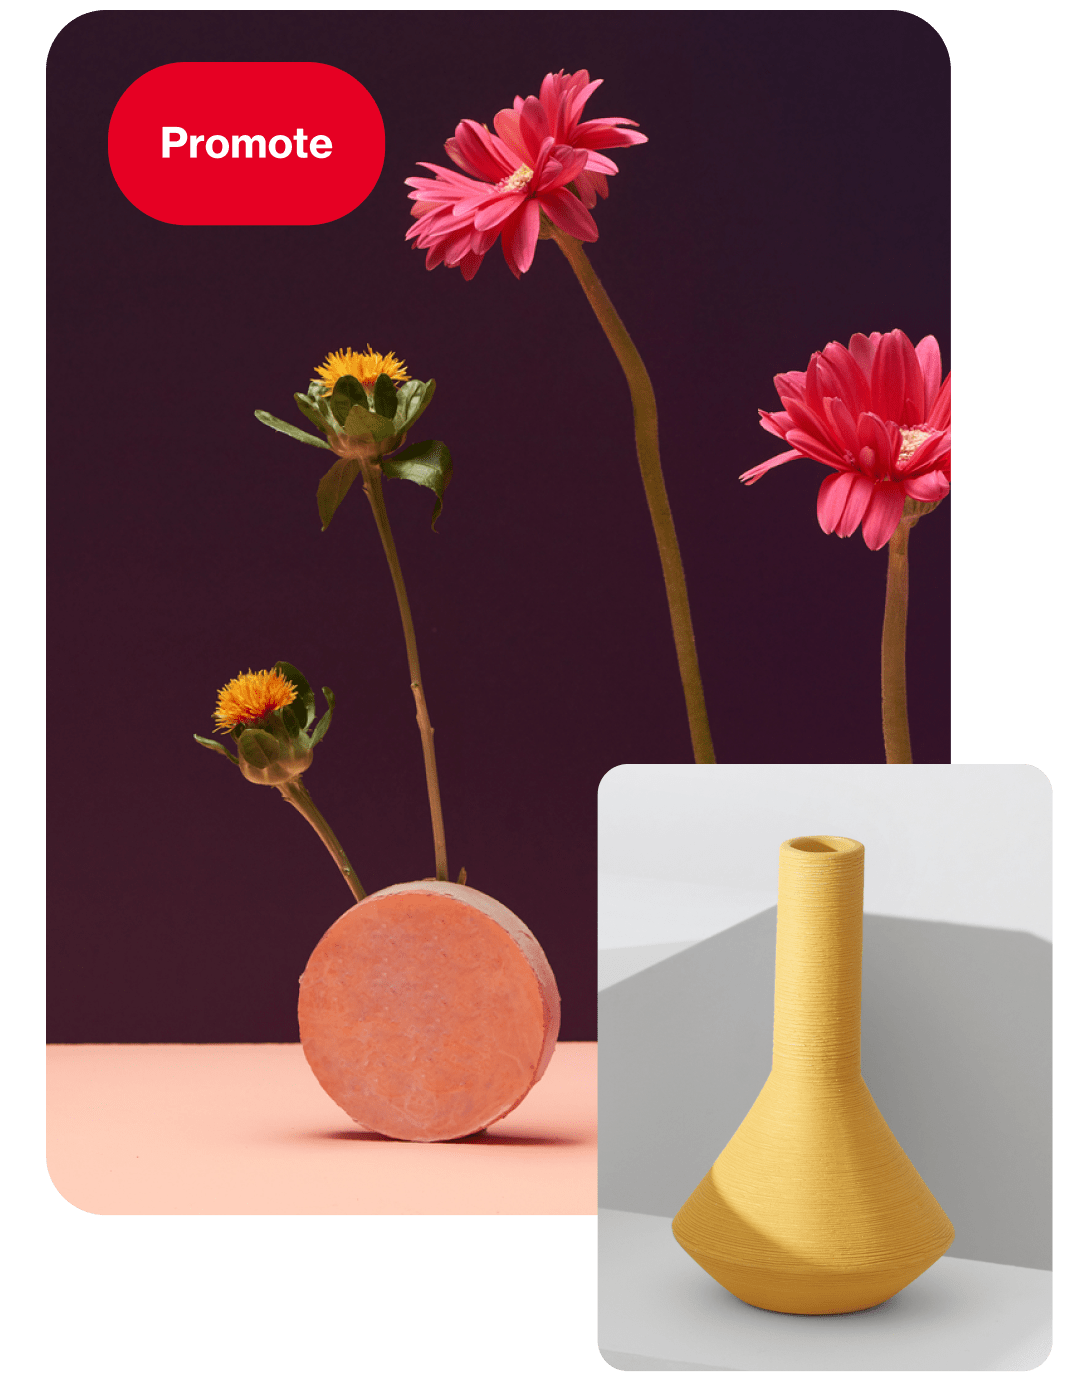 Unique vases as a Pinterest ad